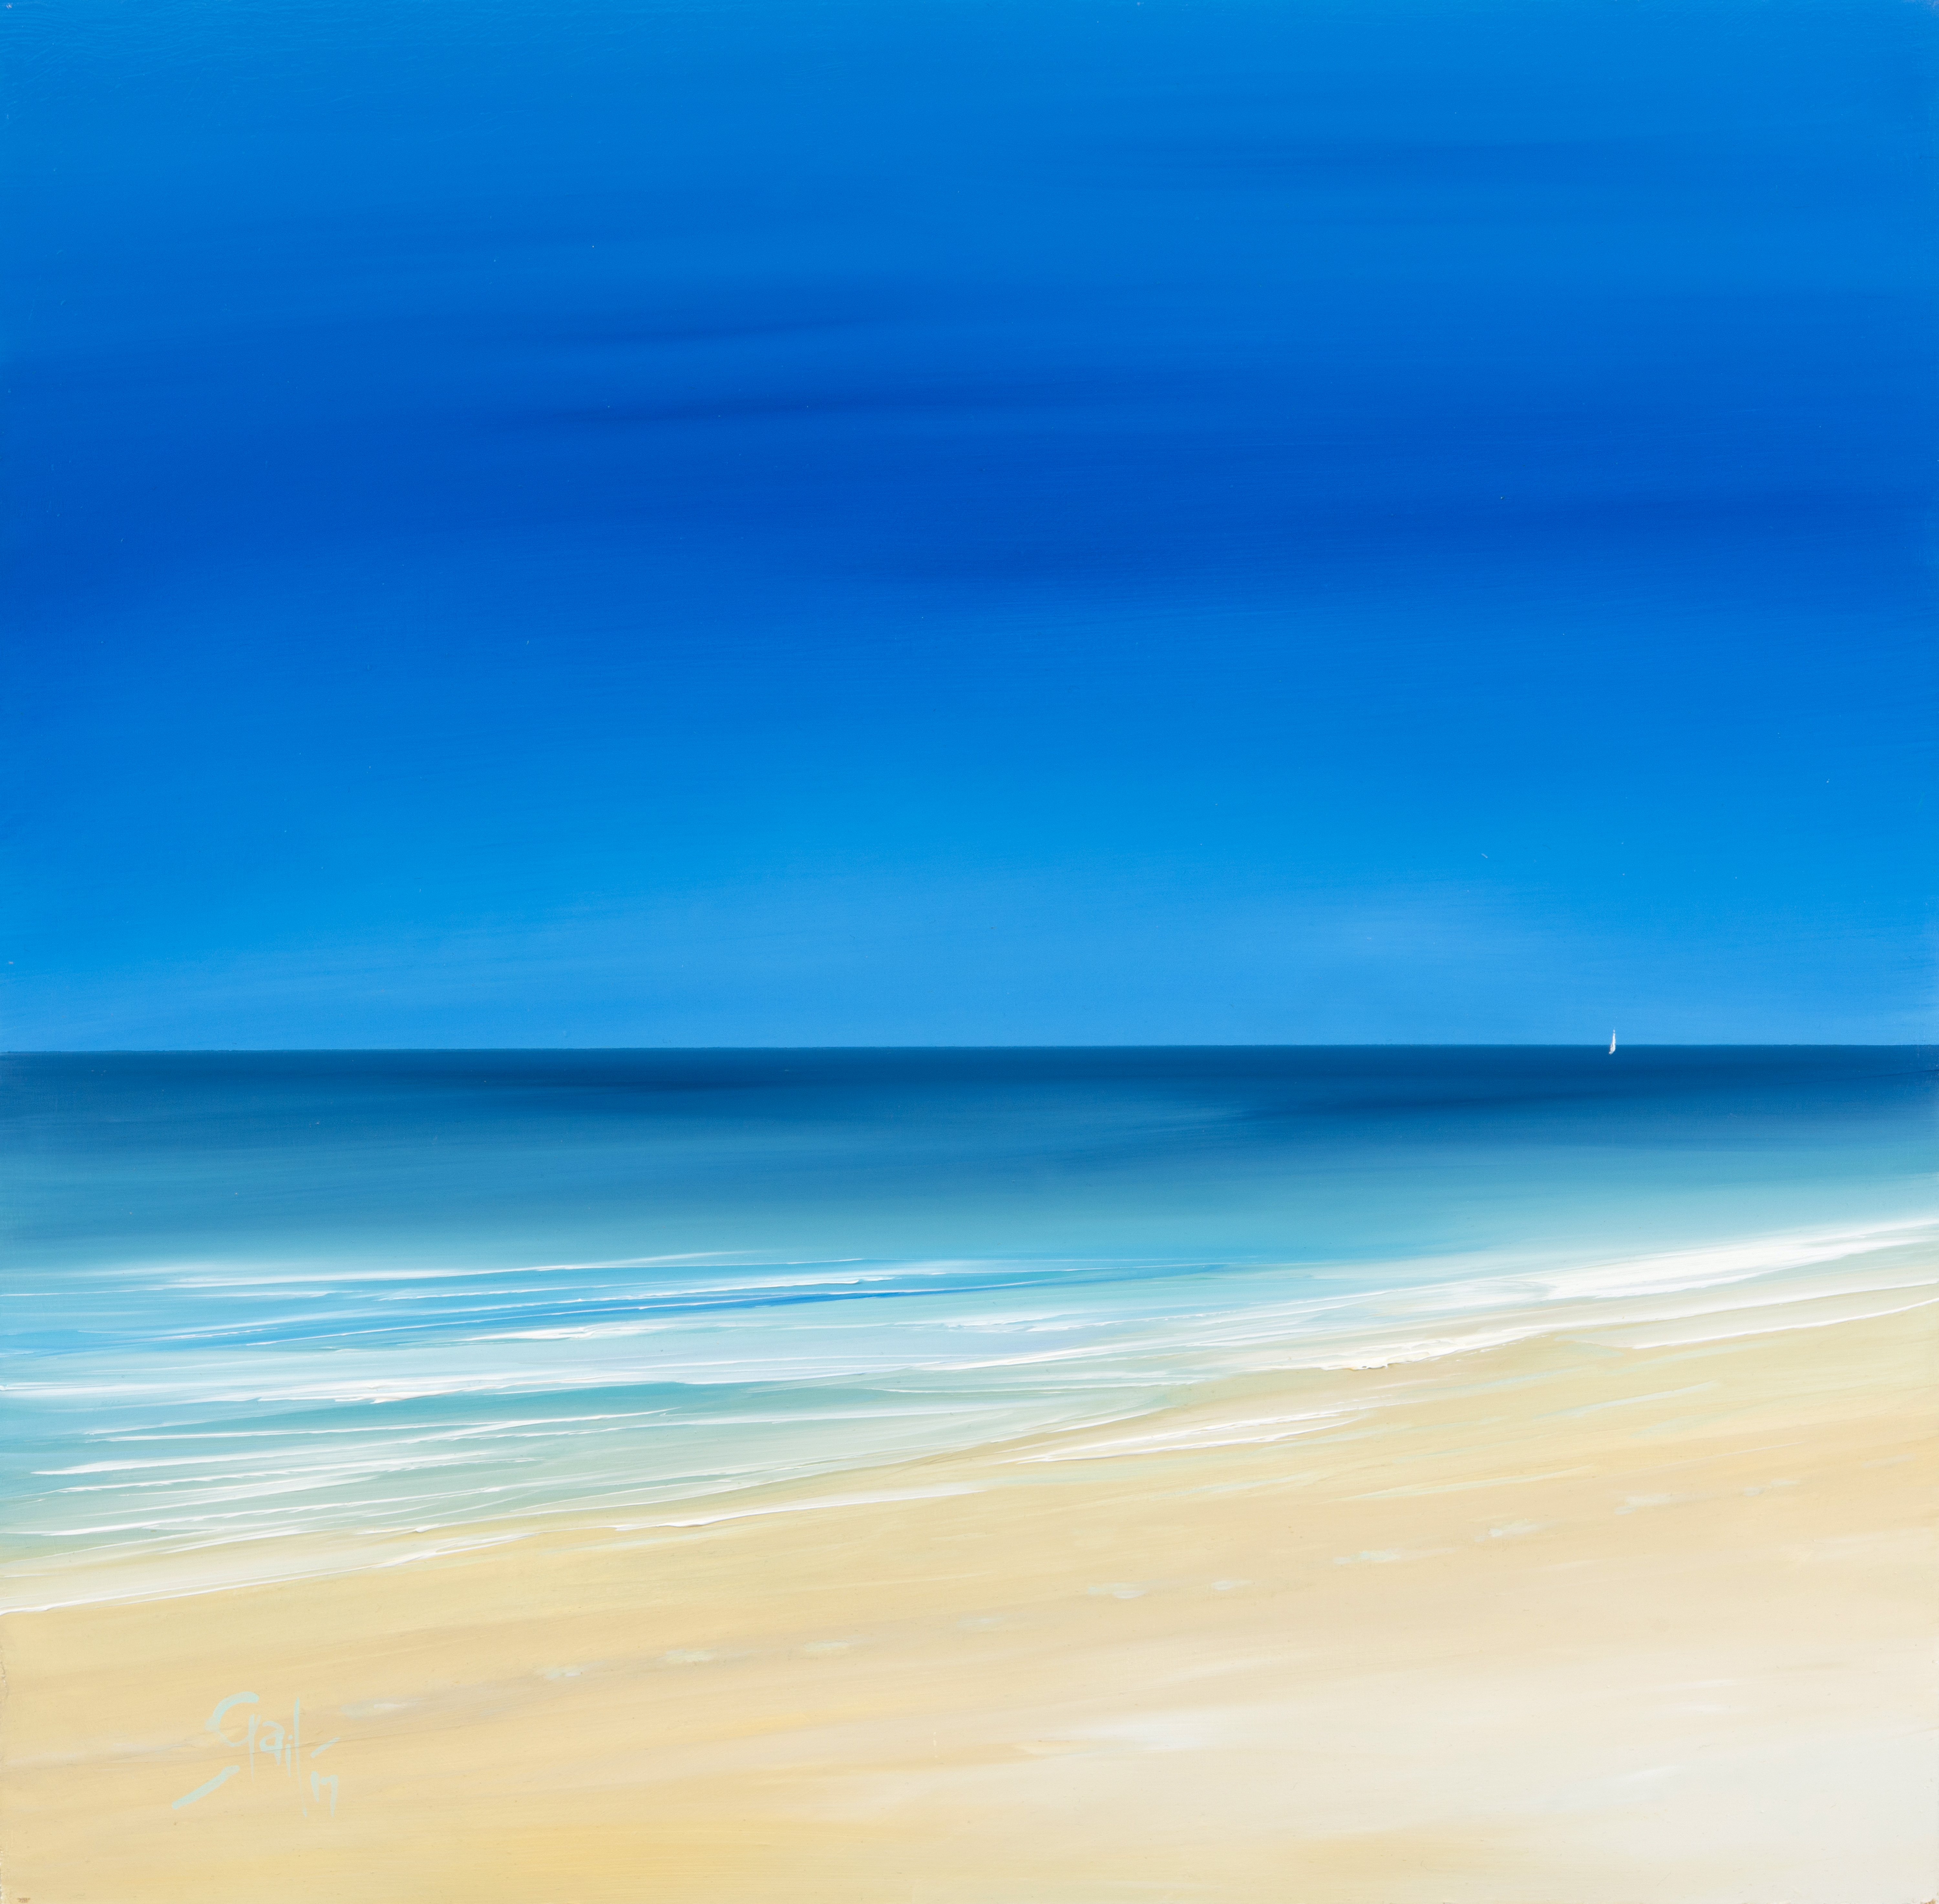 'Blue Summer' - St Ives / Hayle, Cornwall